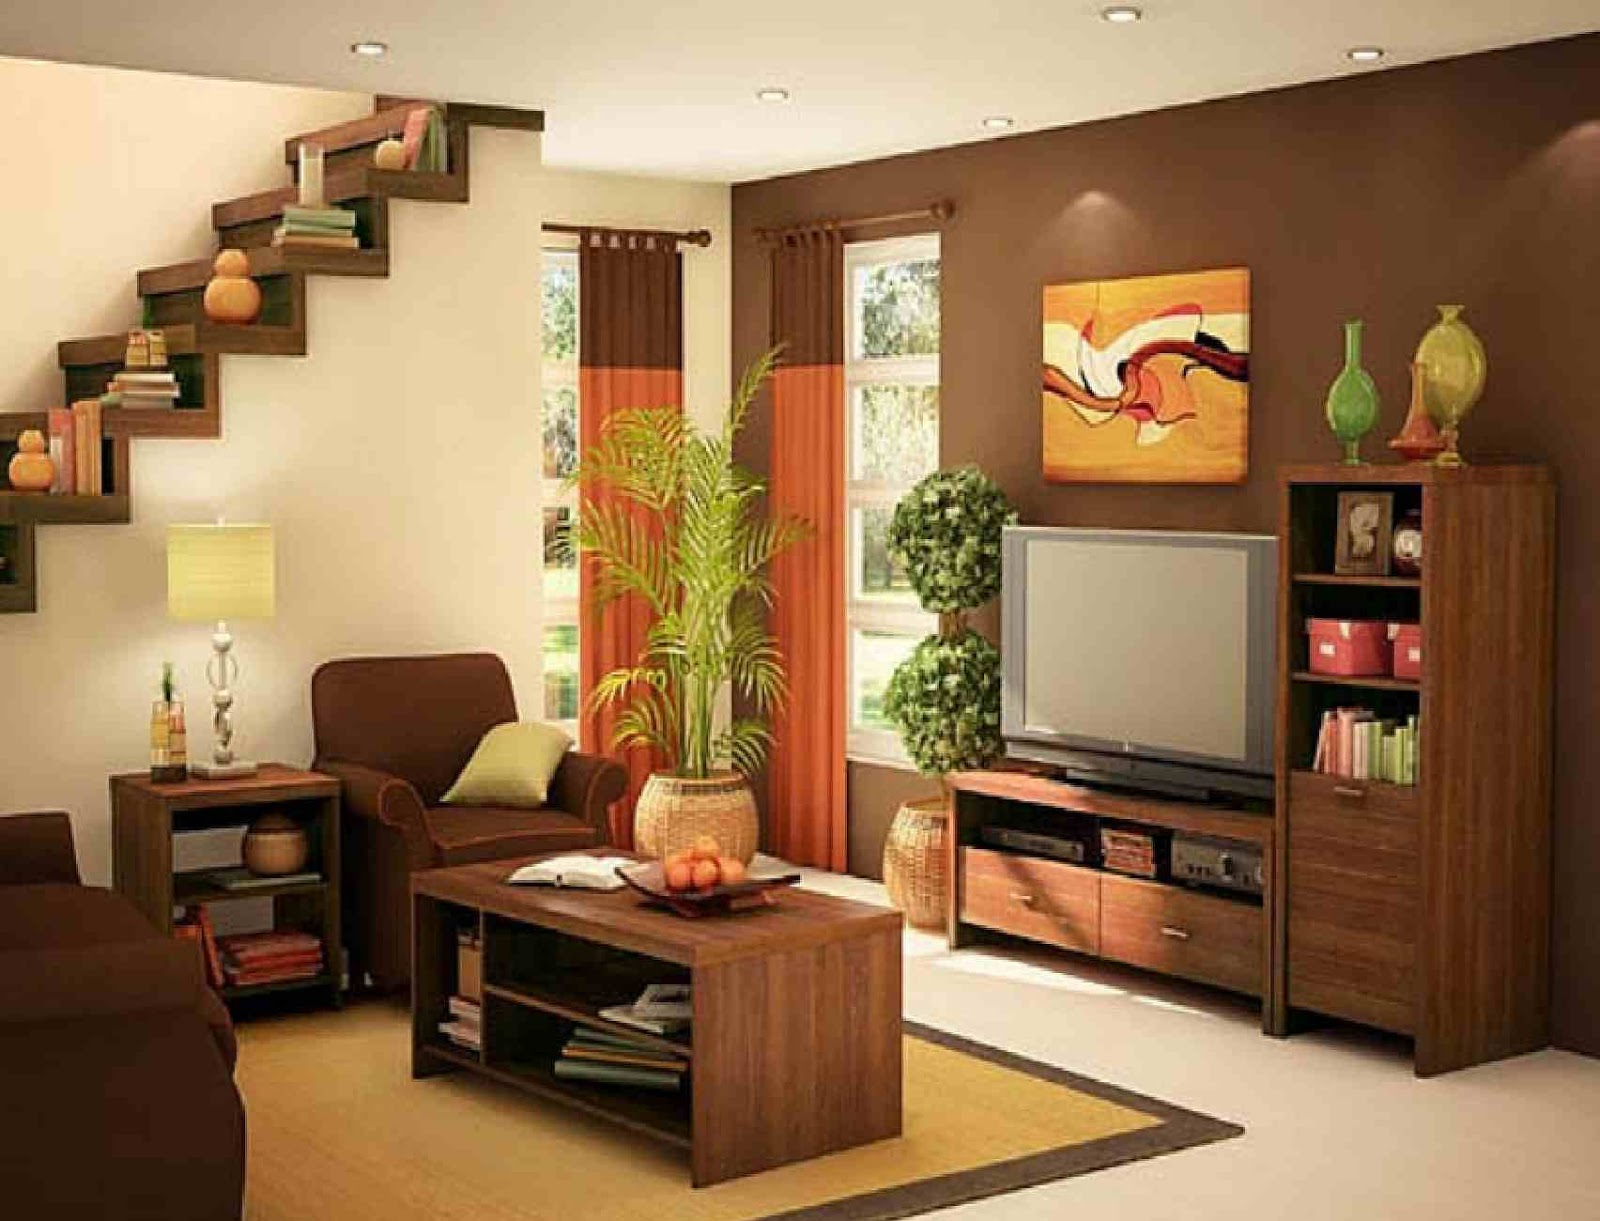 simple living room designs - Simple Living Room